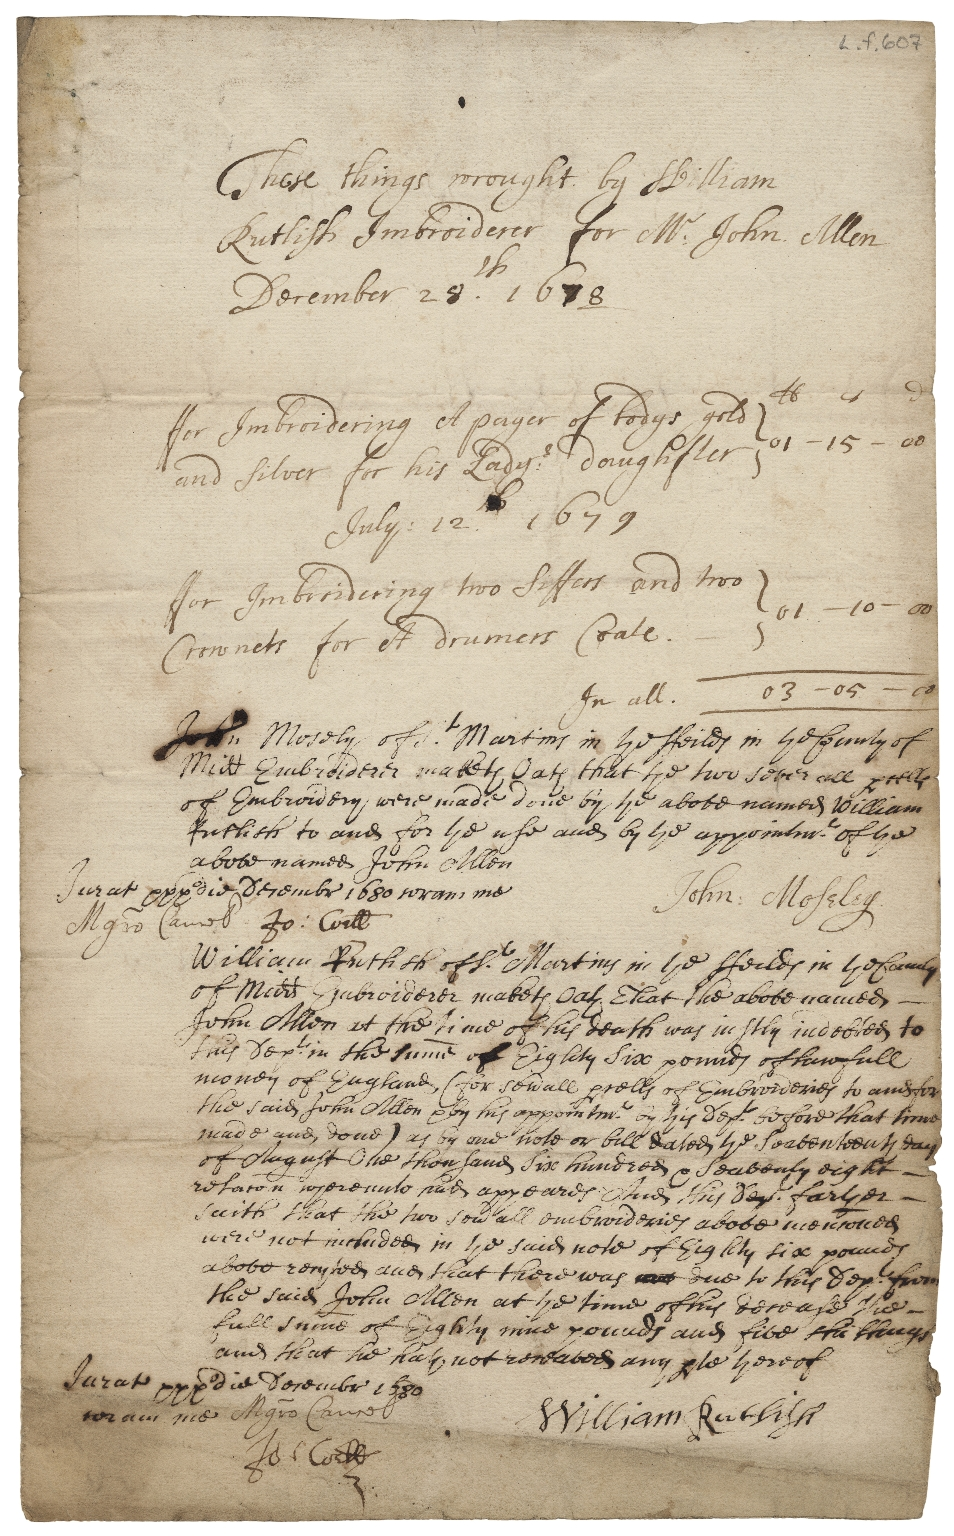 Account and affidavits concerning embroidery made by William Rutlish, embroiderer, for John Allen